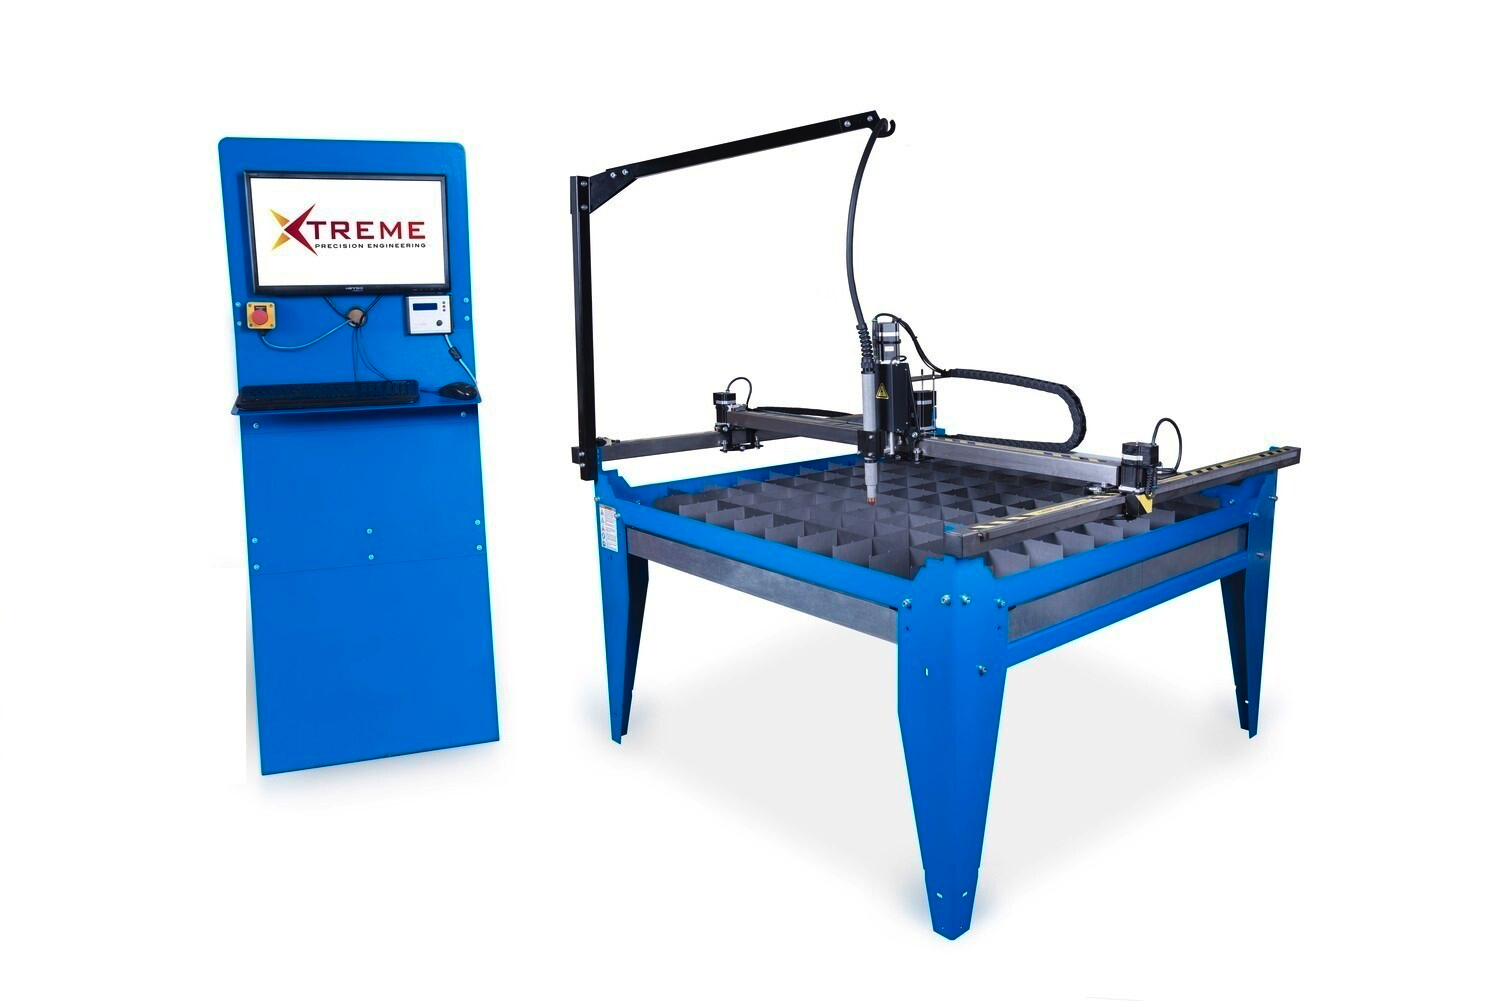 5x5 CNC Plasma Cutting Table Kit